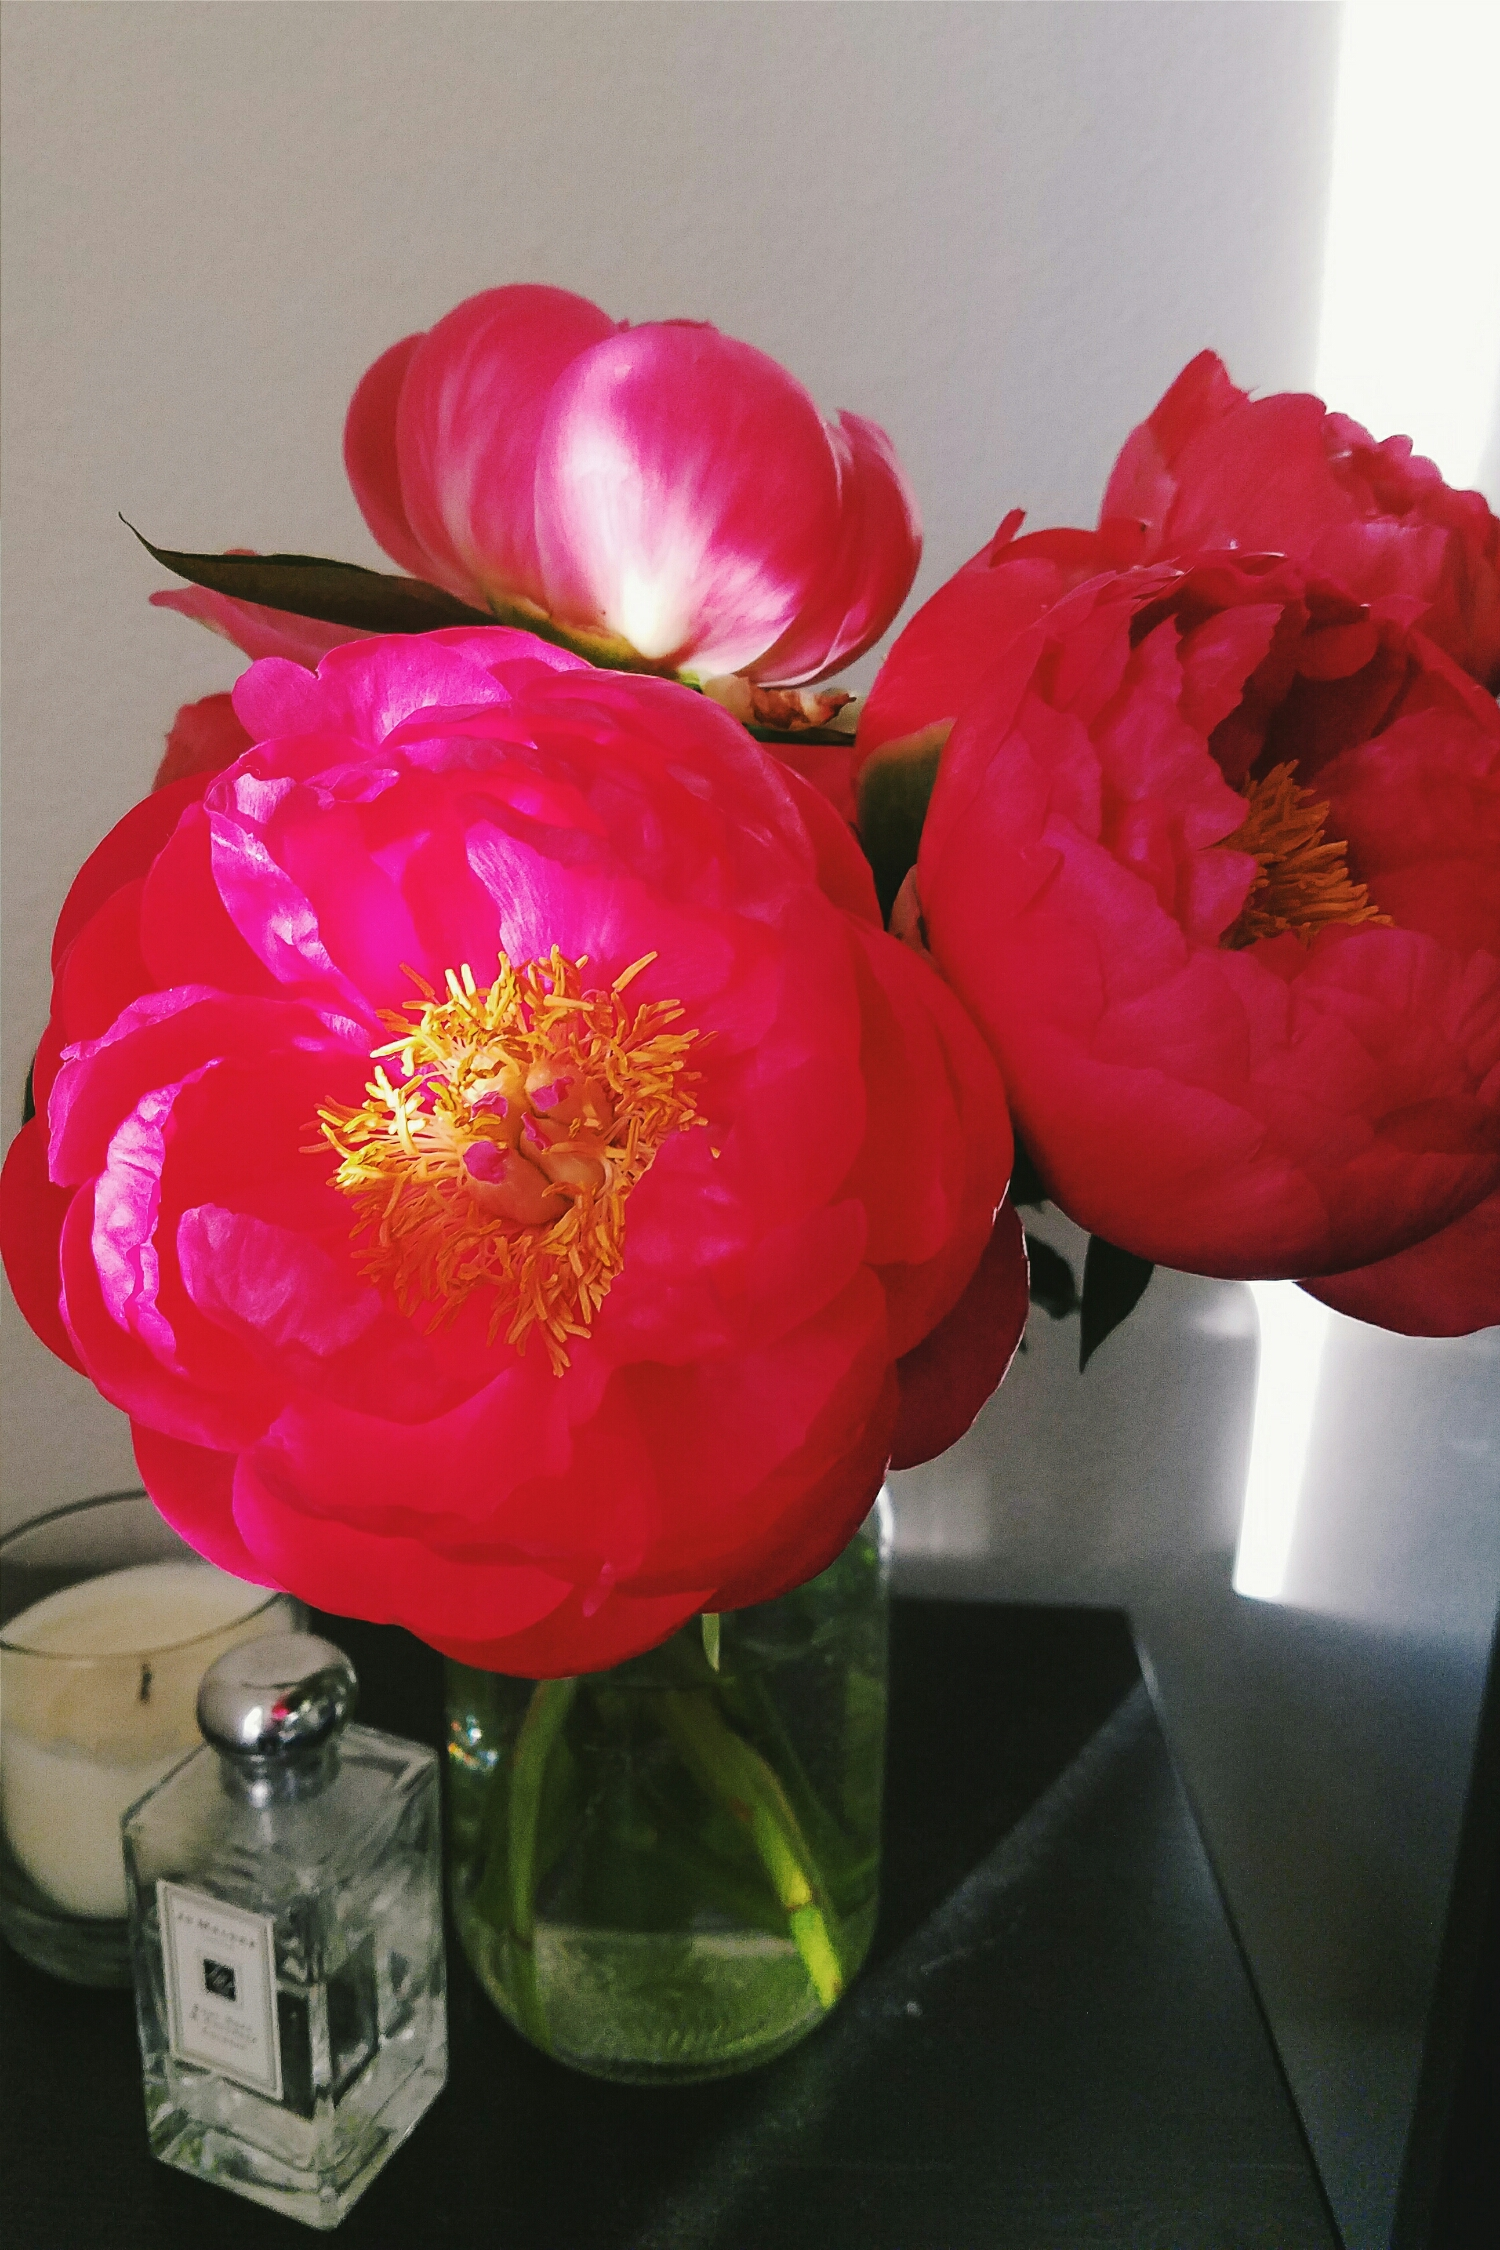 The first farmer's market peonies of the year